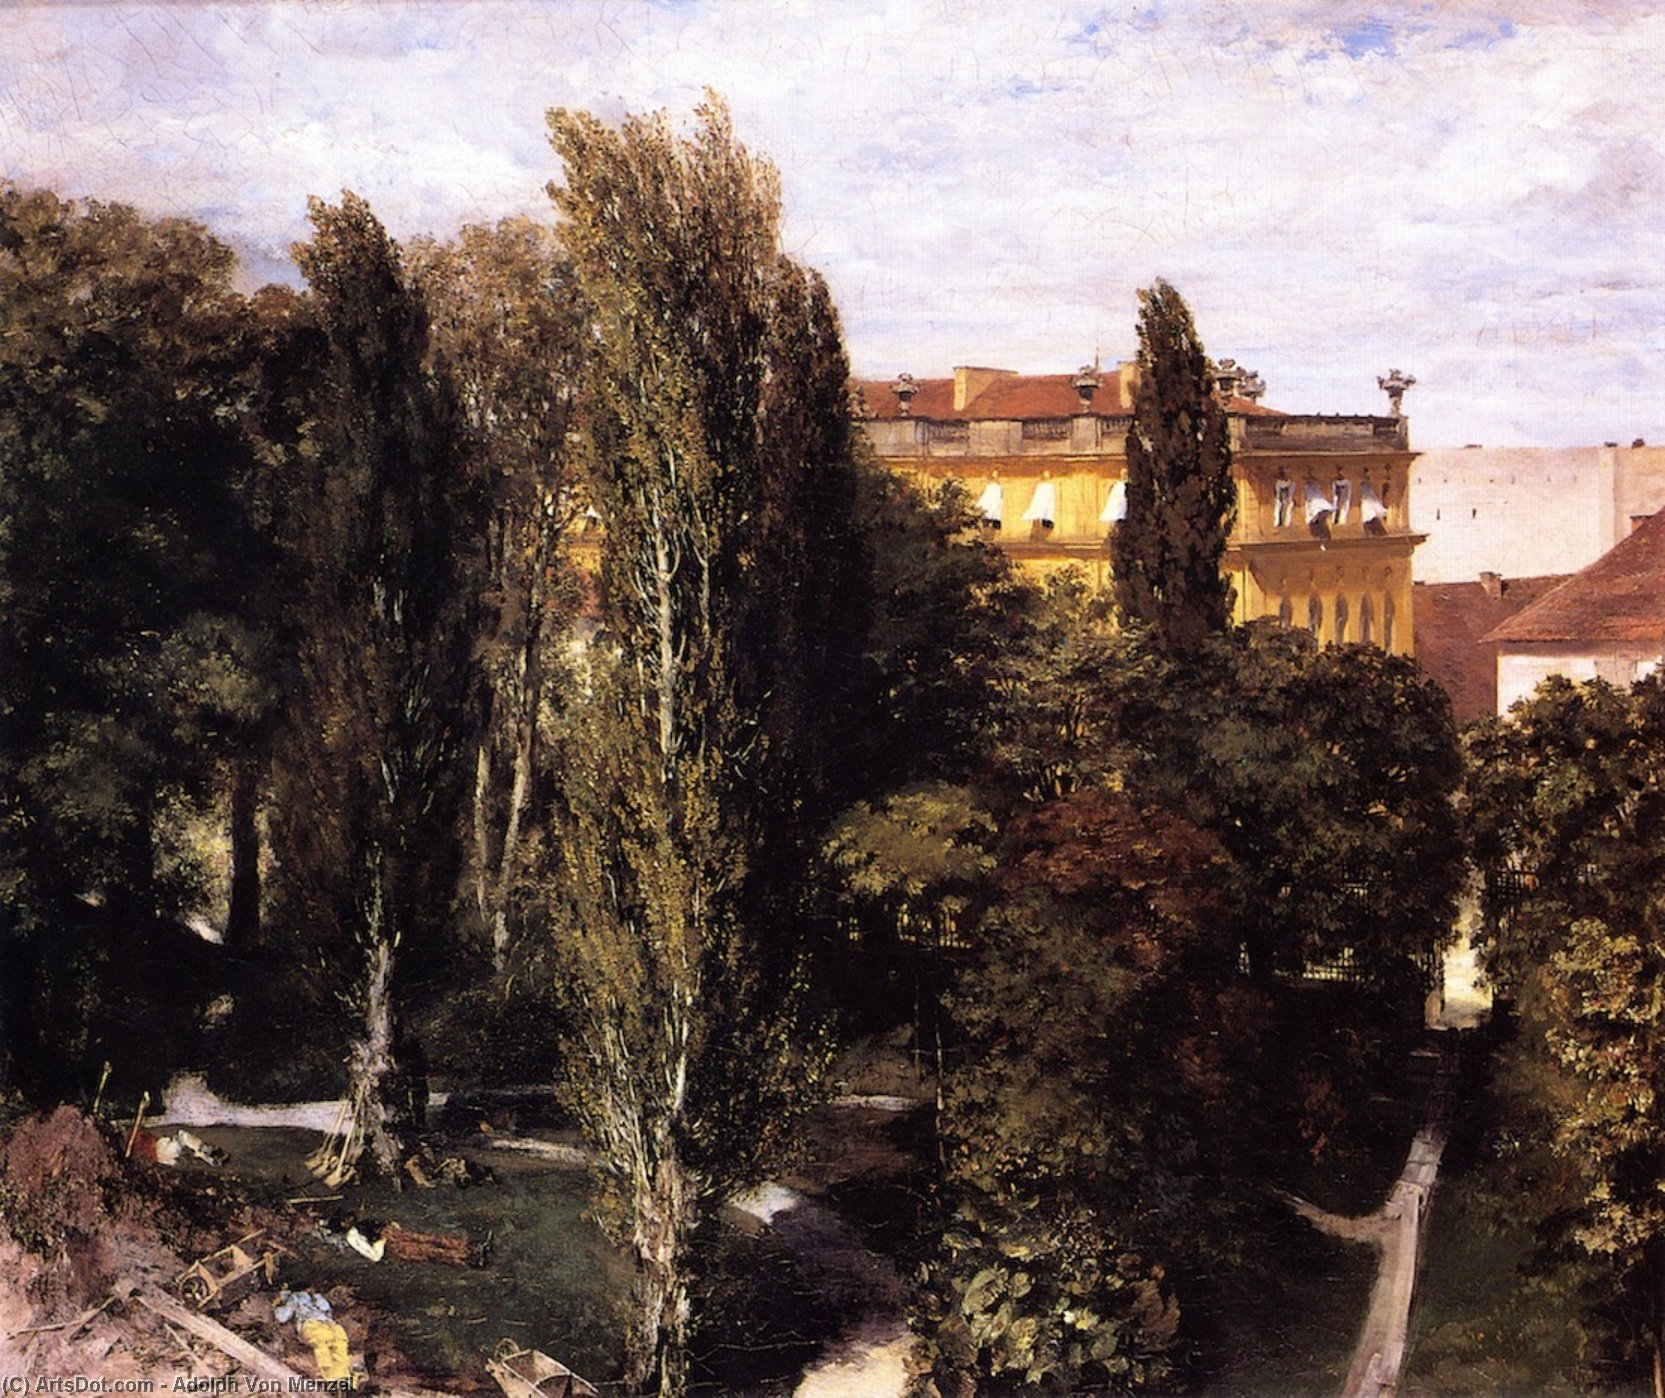 Garden of Prince Albert's Palace, Oil On Canvas by Adolph Von Menzel